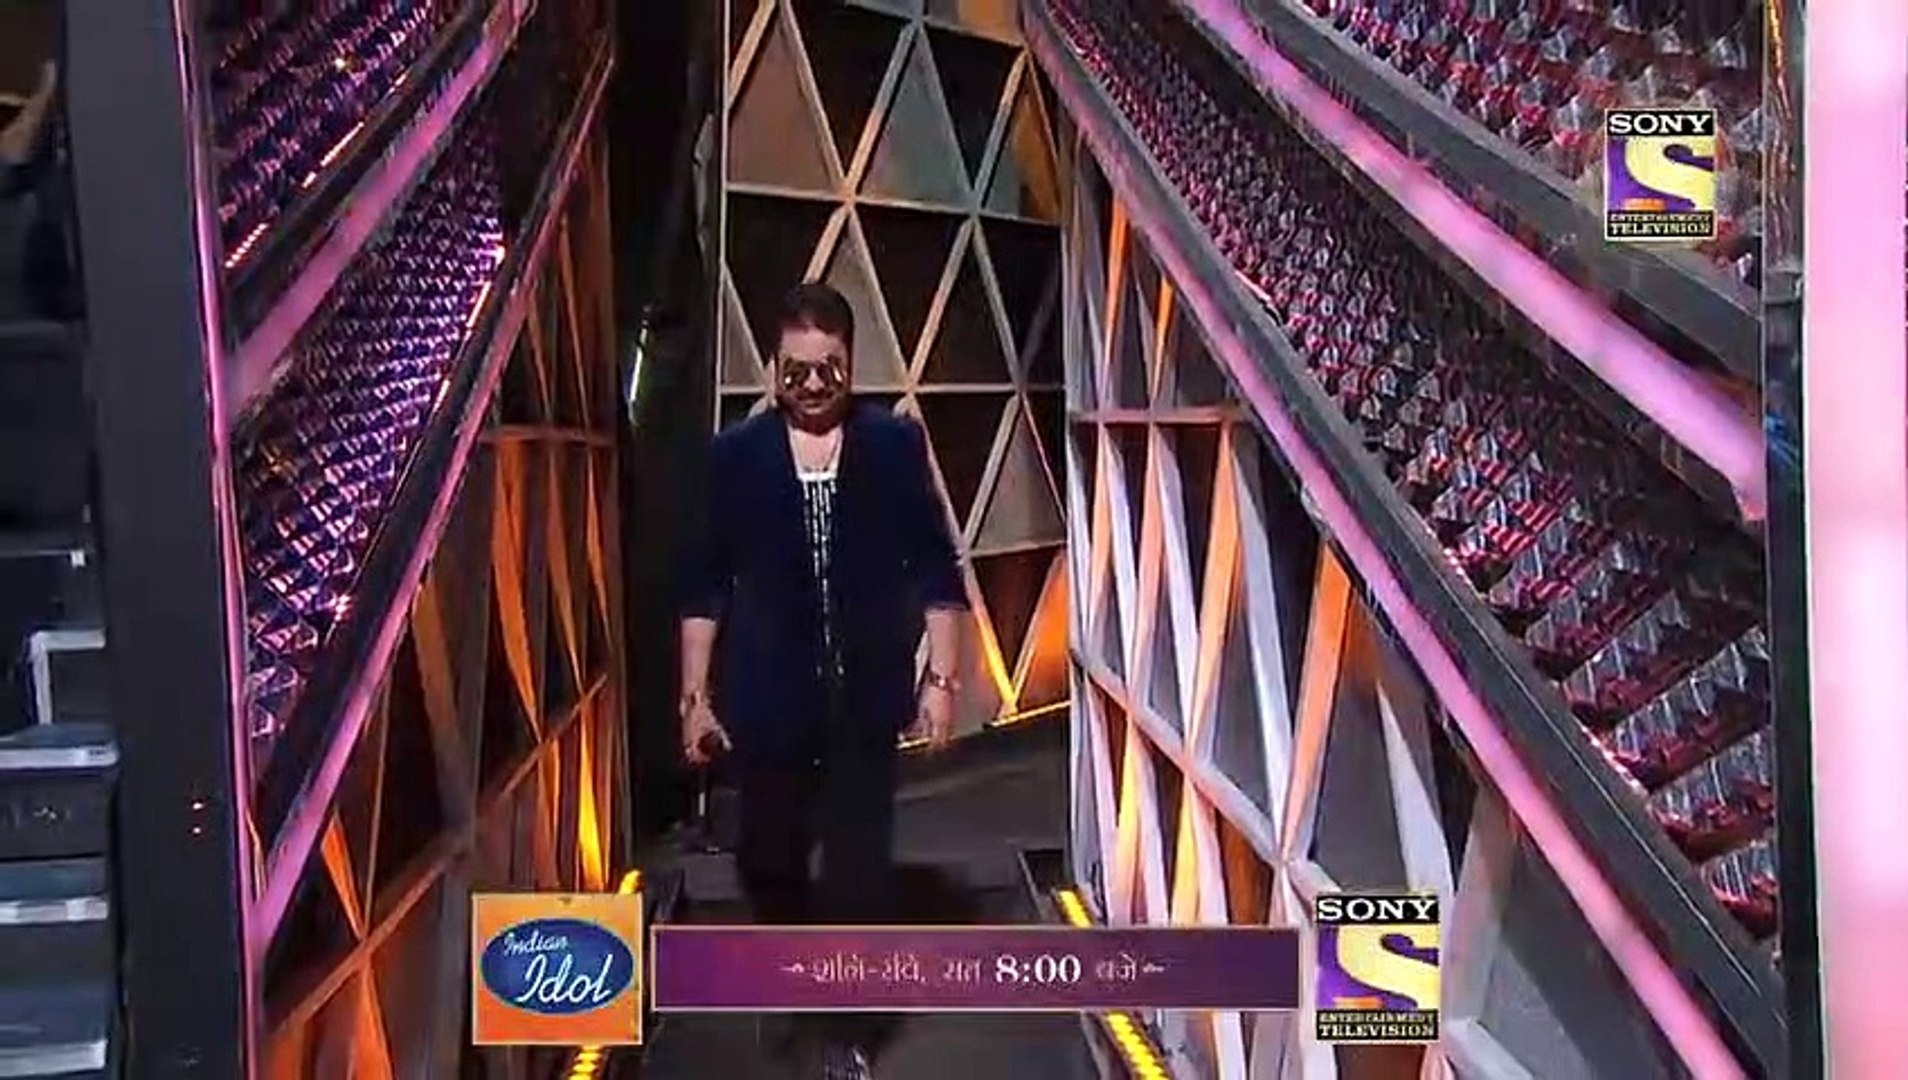 Indian Idol- The Return of Kumar Sanu! Get ready to experience the magic of  90s again!